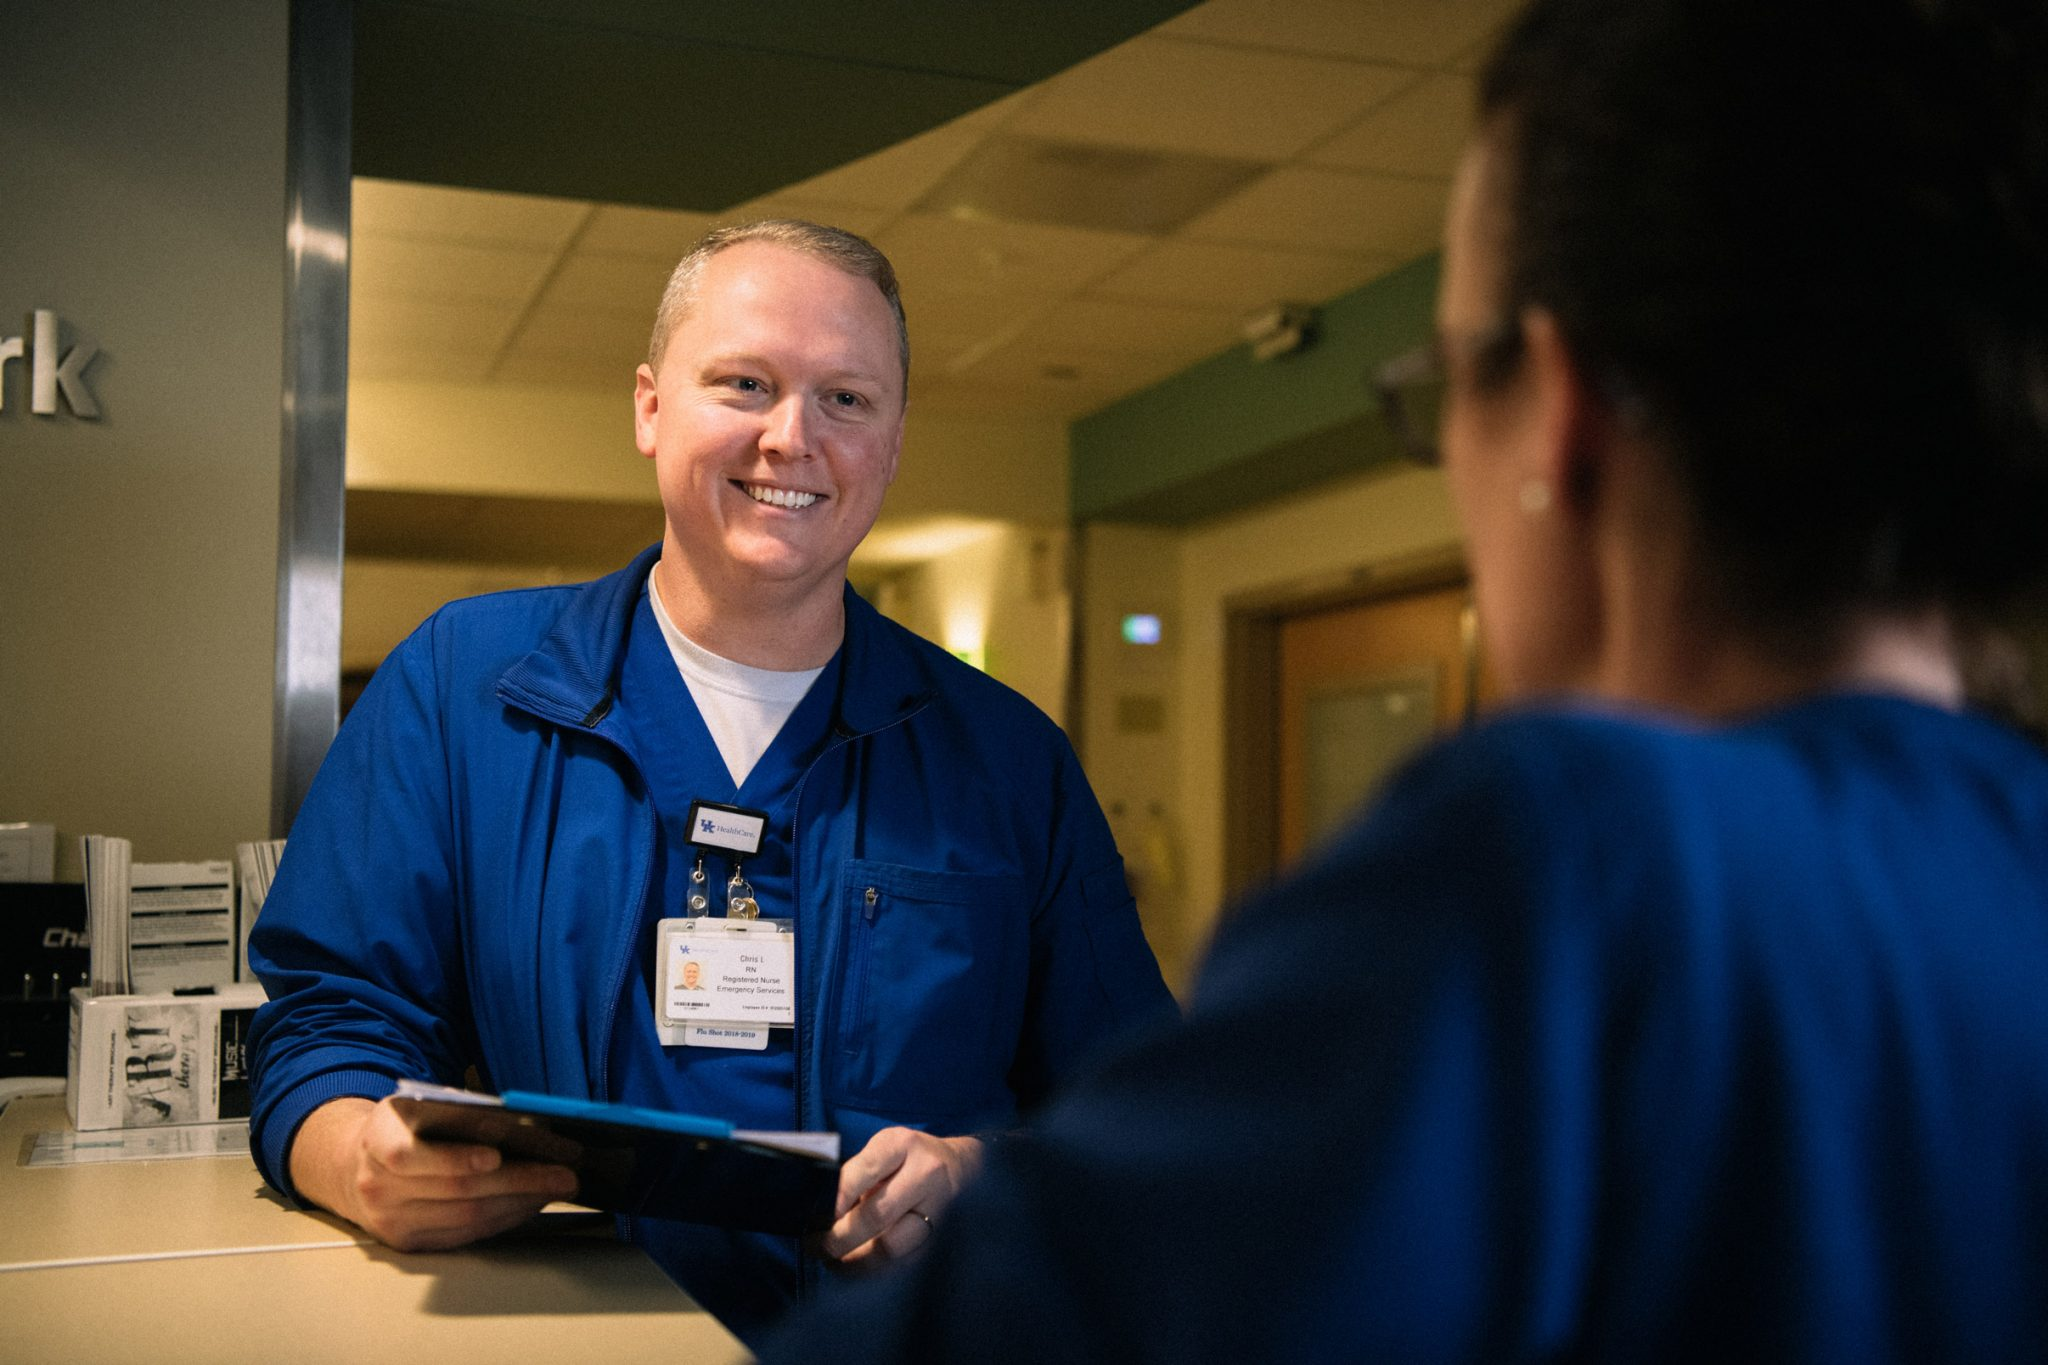 Chris smiles while holding a clipboard and listening to another nurse talk to him.